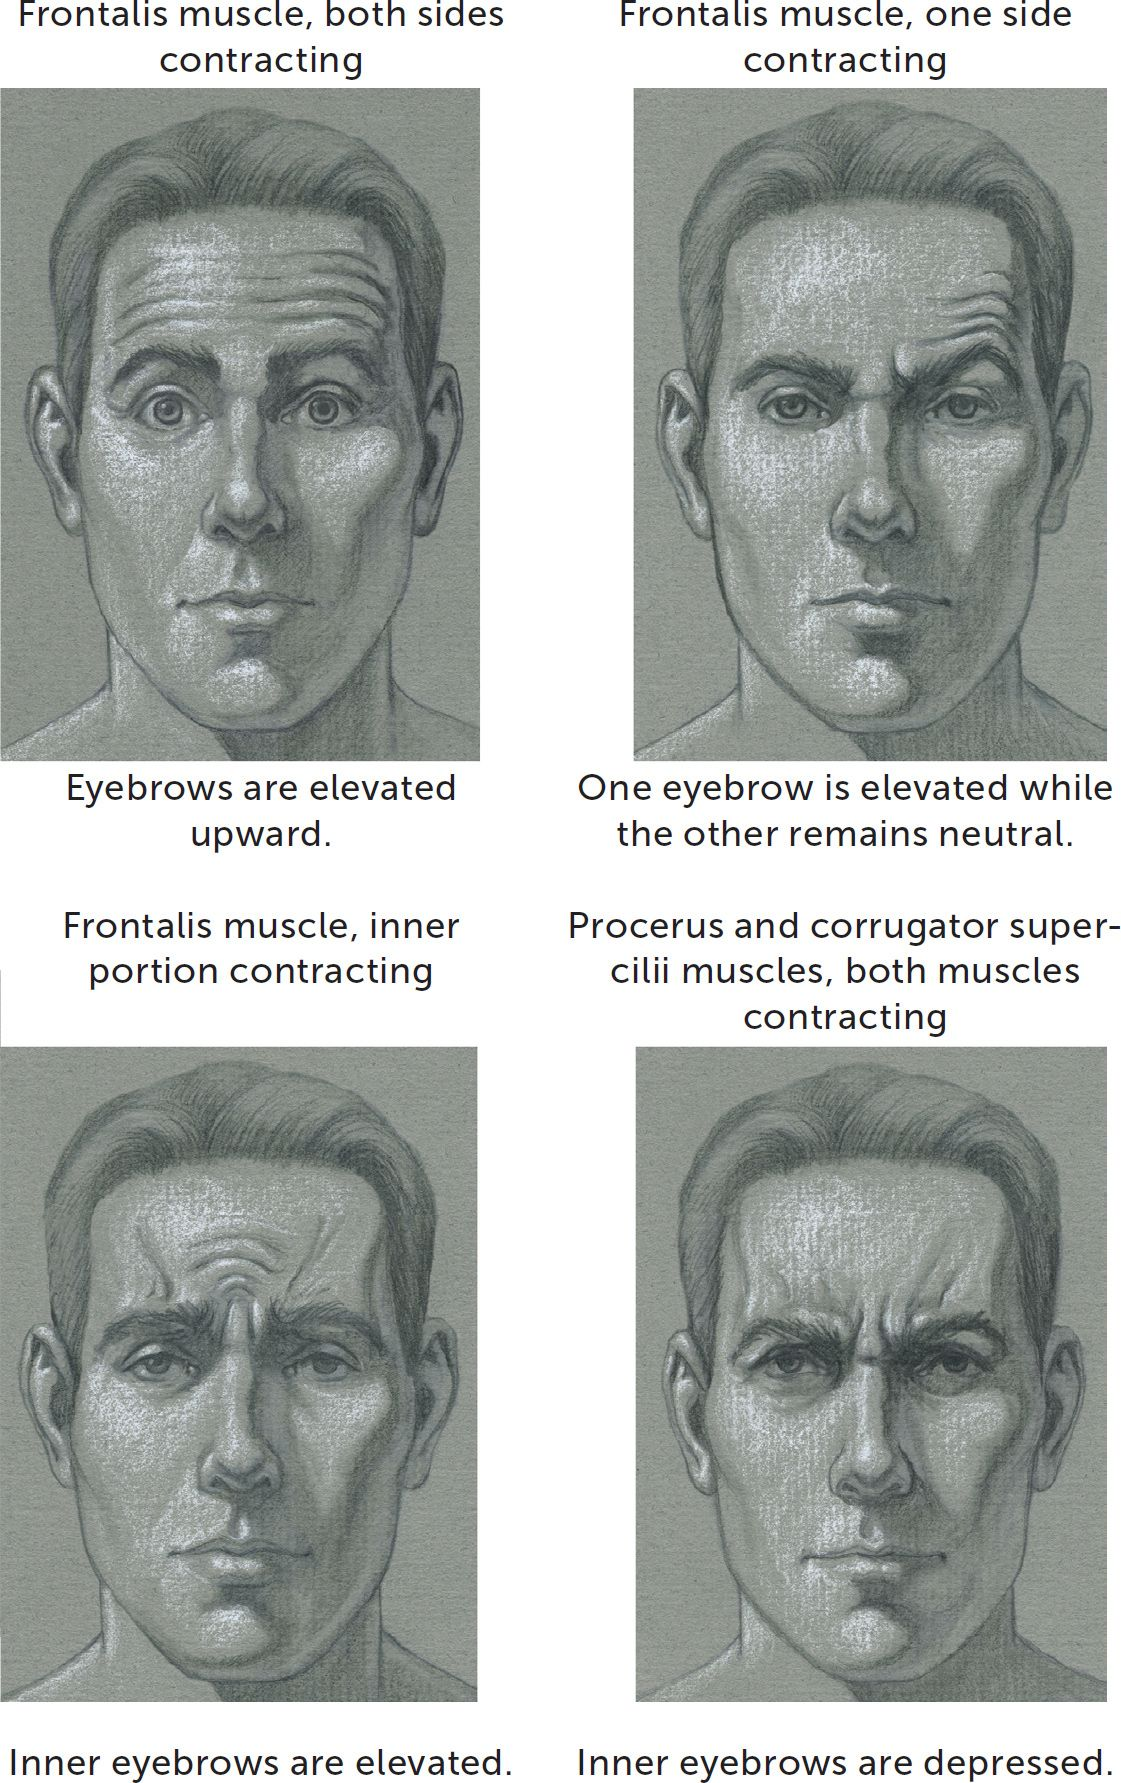 Facial Muscles And Expressions Manual Guide